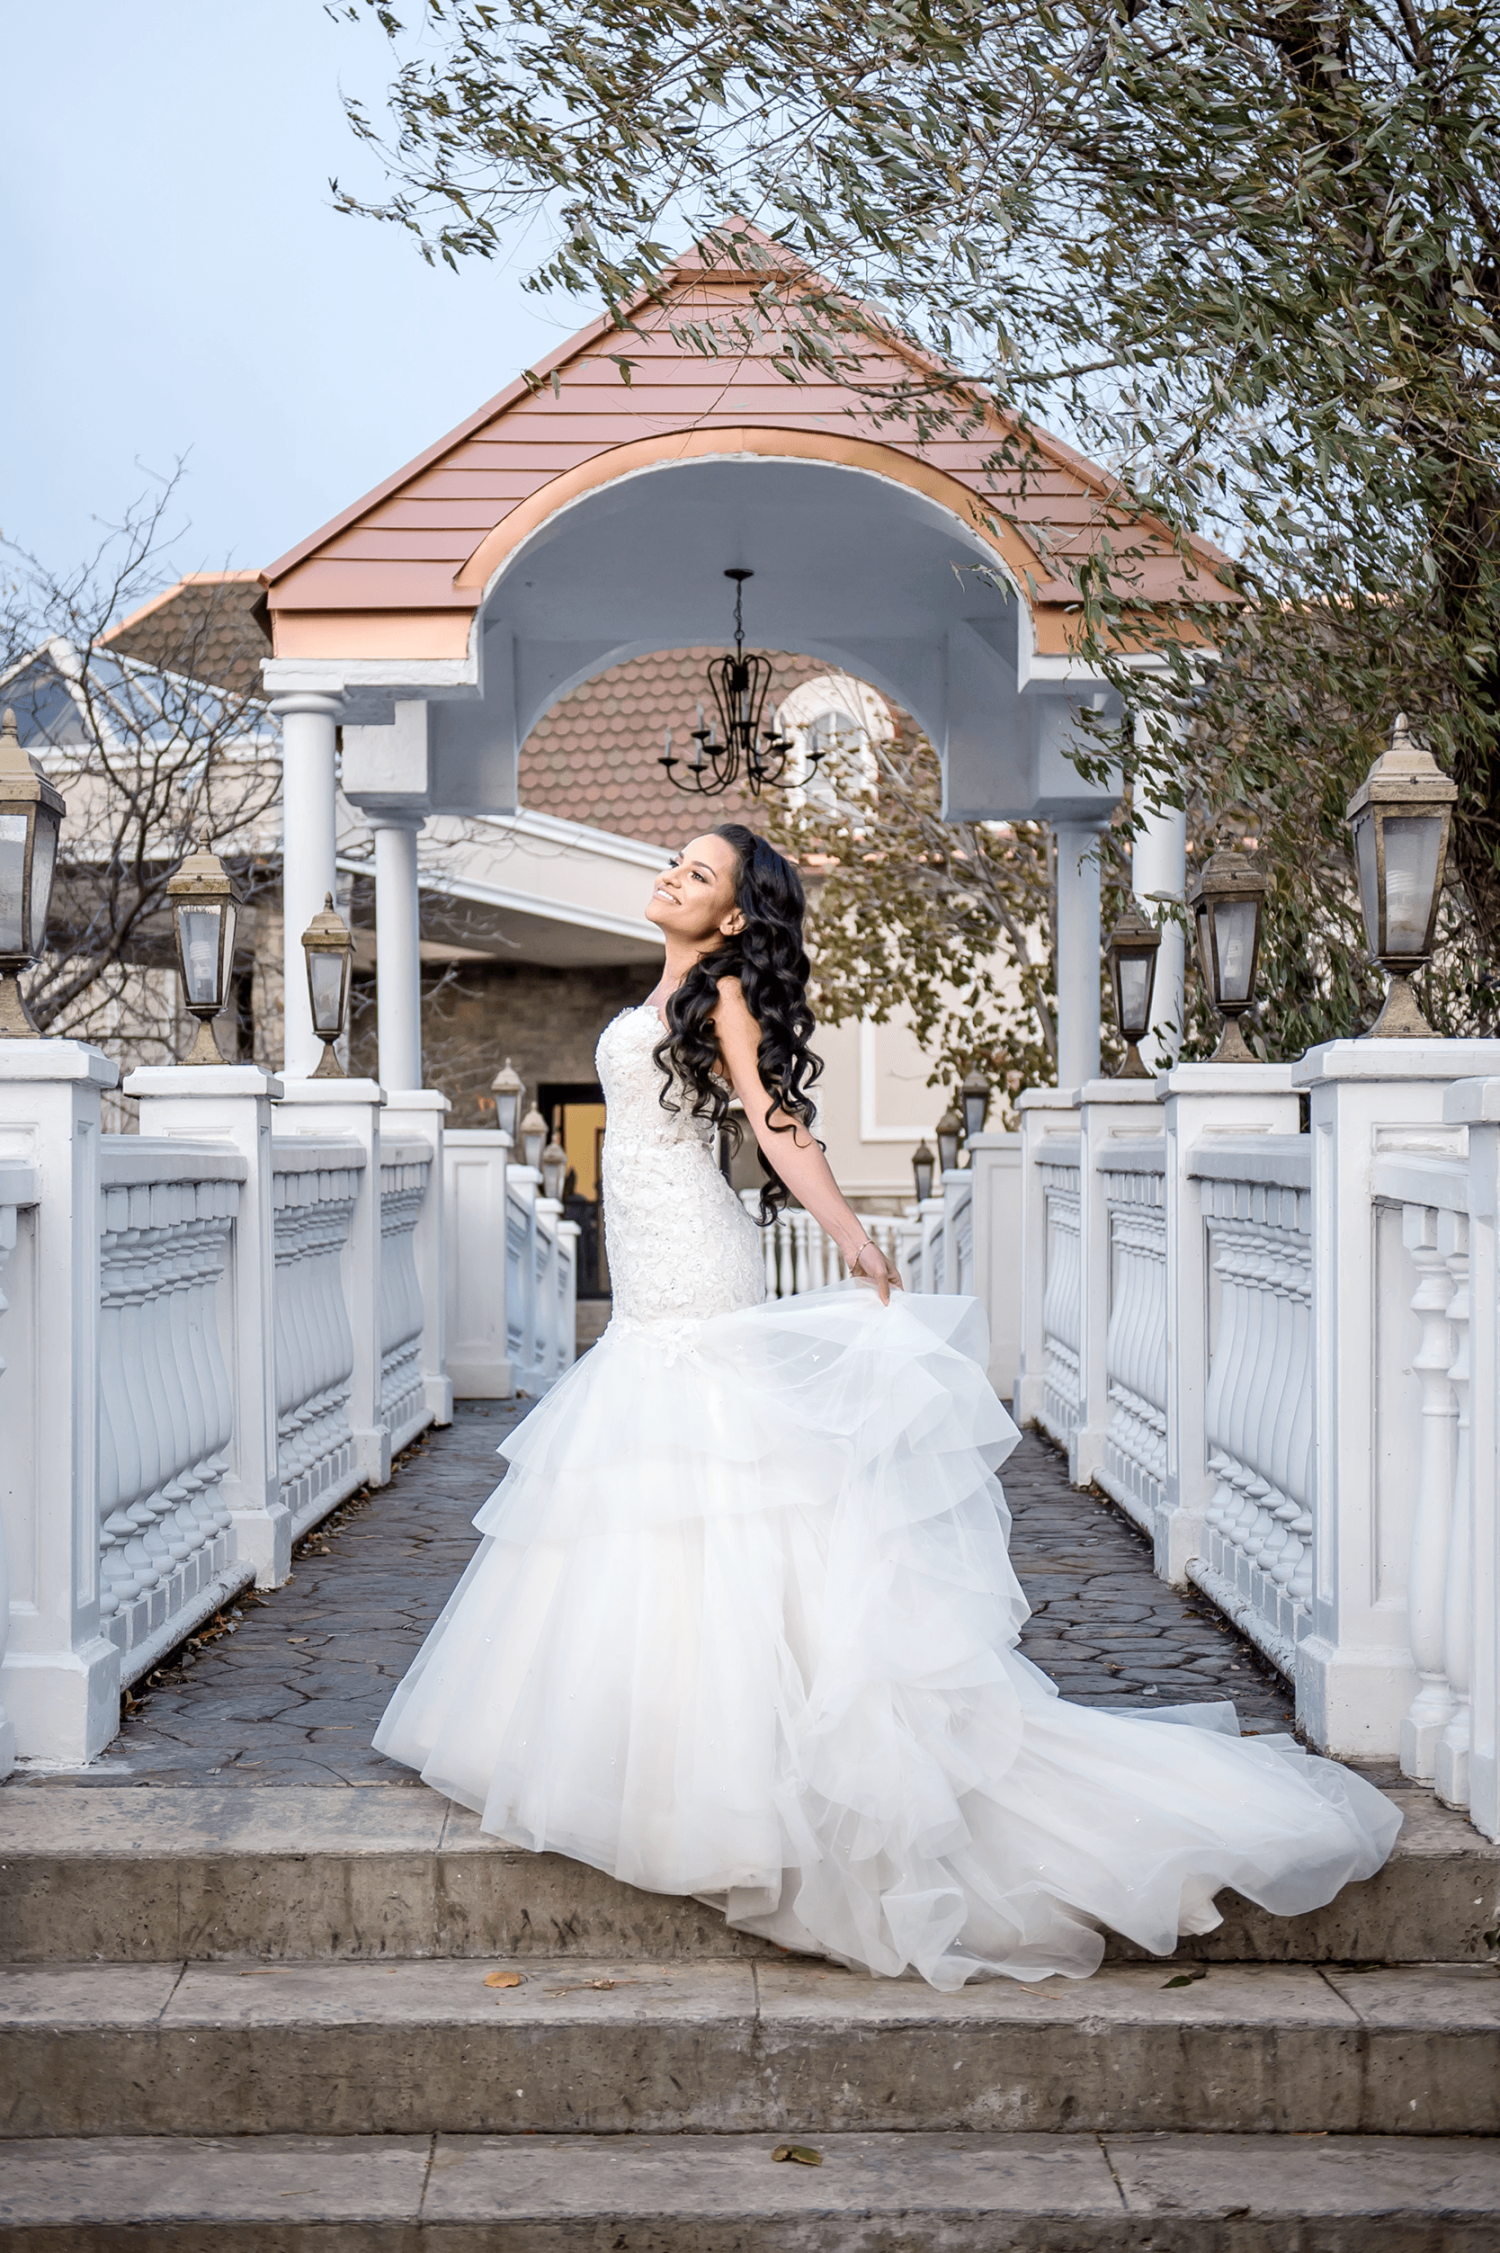 A bride in their wedding dress standing on a bridge with white railing outside at the Paradise Banquet Halls Garden Venue